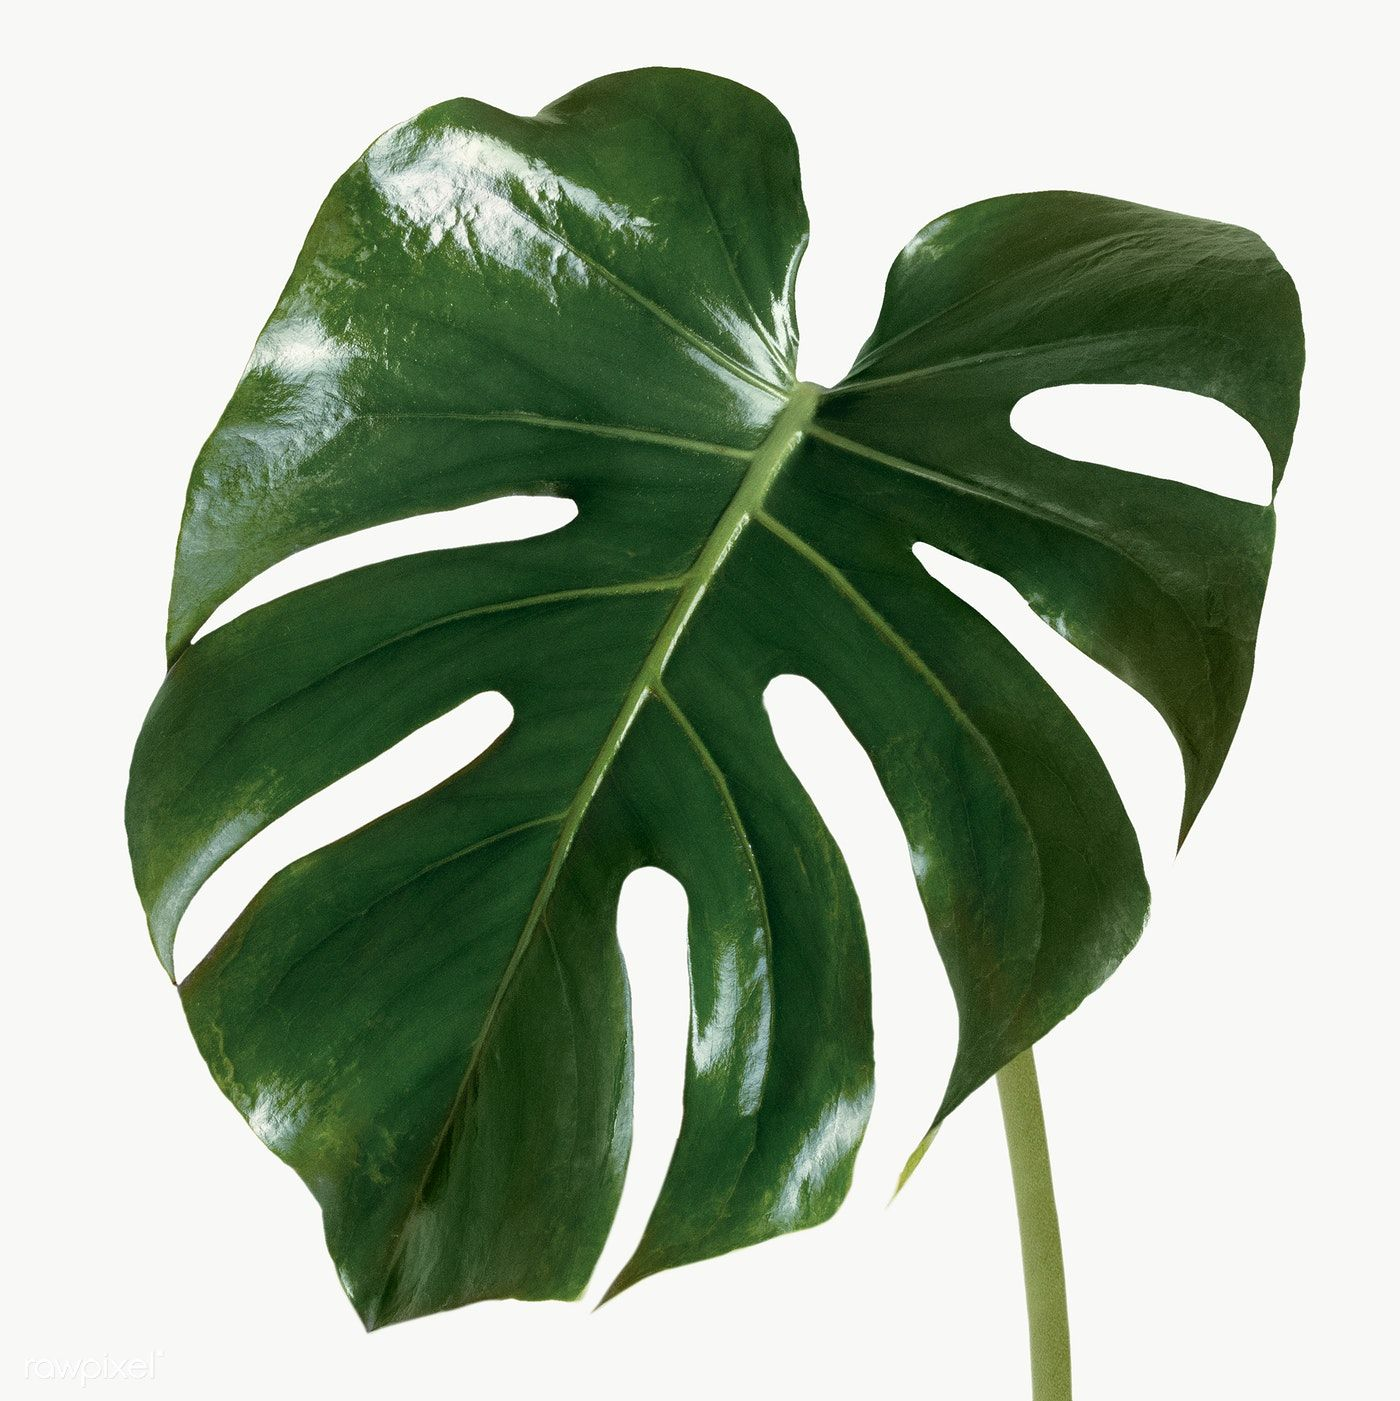 Split Leaf Philodendron Monstera Plant Element Transparent Png Free Image By Rawpixel Com Jira